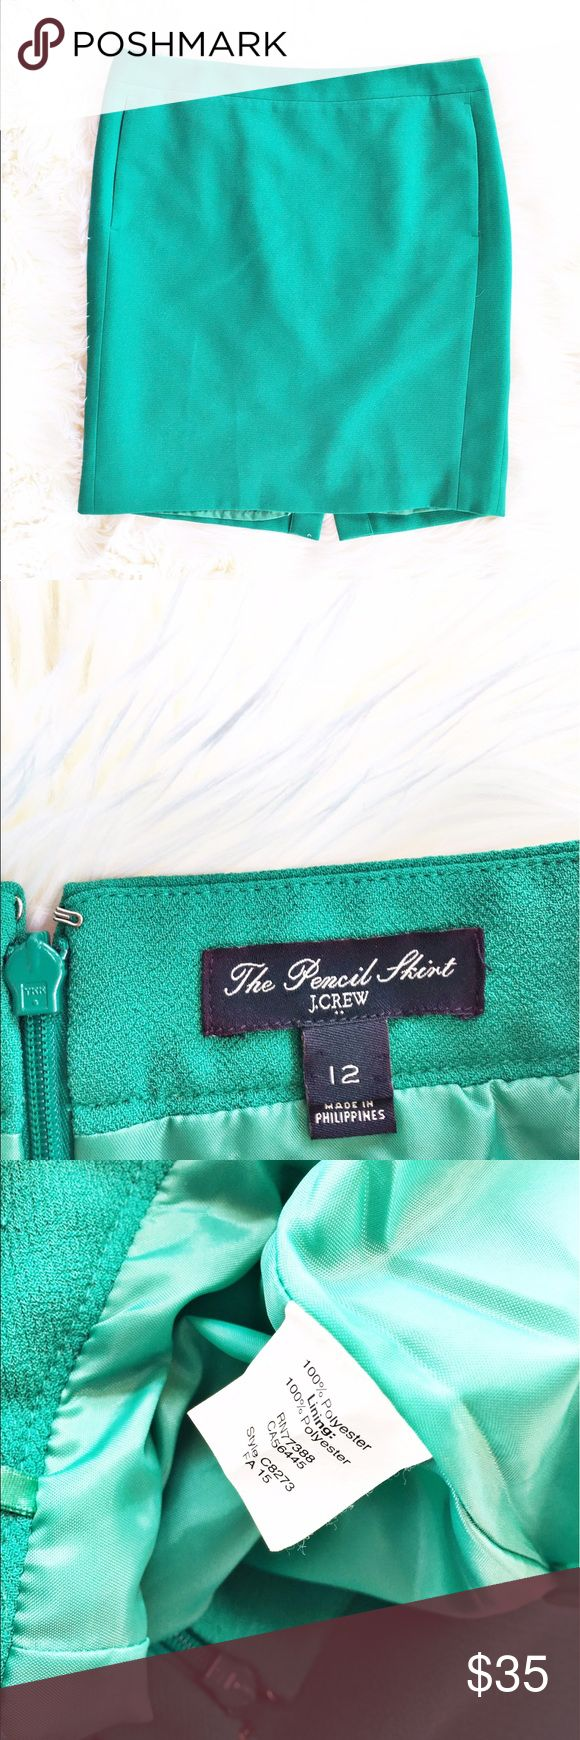 """J. Crew pencil skirt Gorgeous Kelly green pencil skirt from J. Crew Factory, size 12. Fully lined, invisible zipper in he back, front pockets. Excellent condition. Flat measurements are waist: 17.75', hips:21"""", length: 21.5"""". J. Crew Factory Skirts Pencil"""